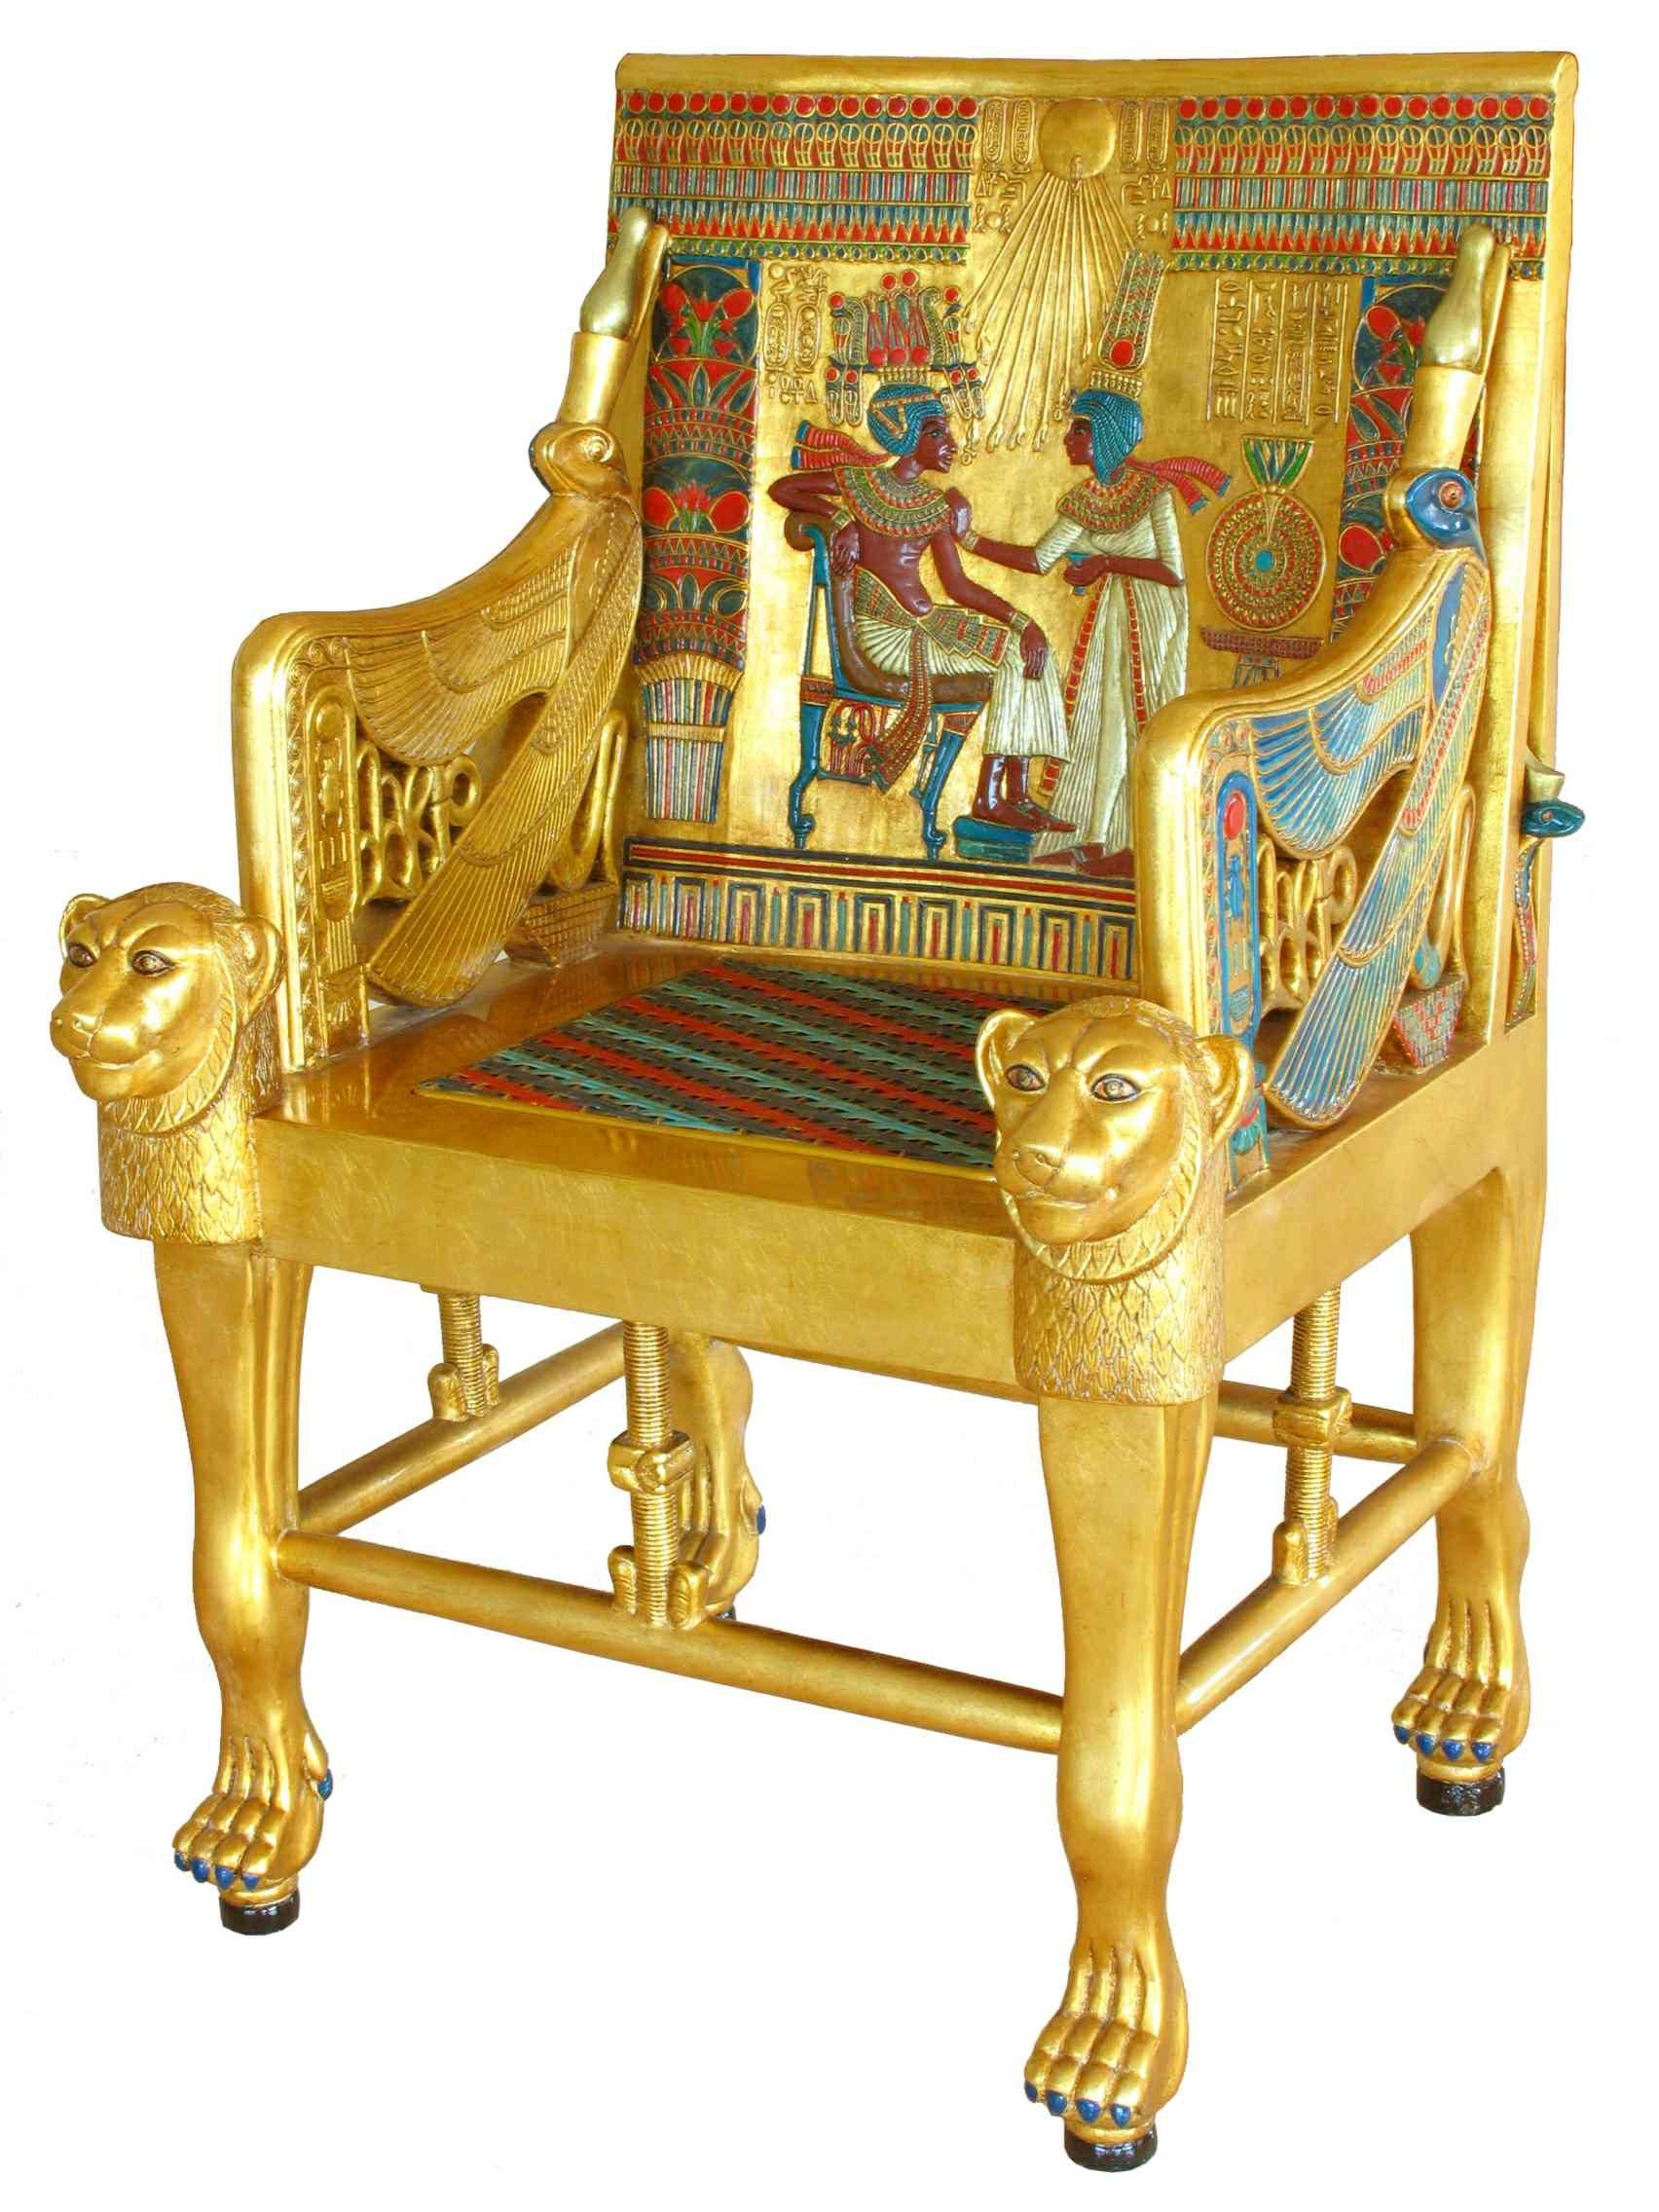 Furniture rome ancient roman furniture chairs it is a chair with - Furniture Rome Ancient Roman Furniture Chairs It Is A Chair With 15